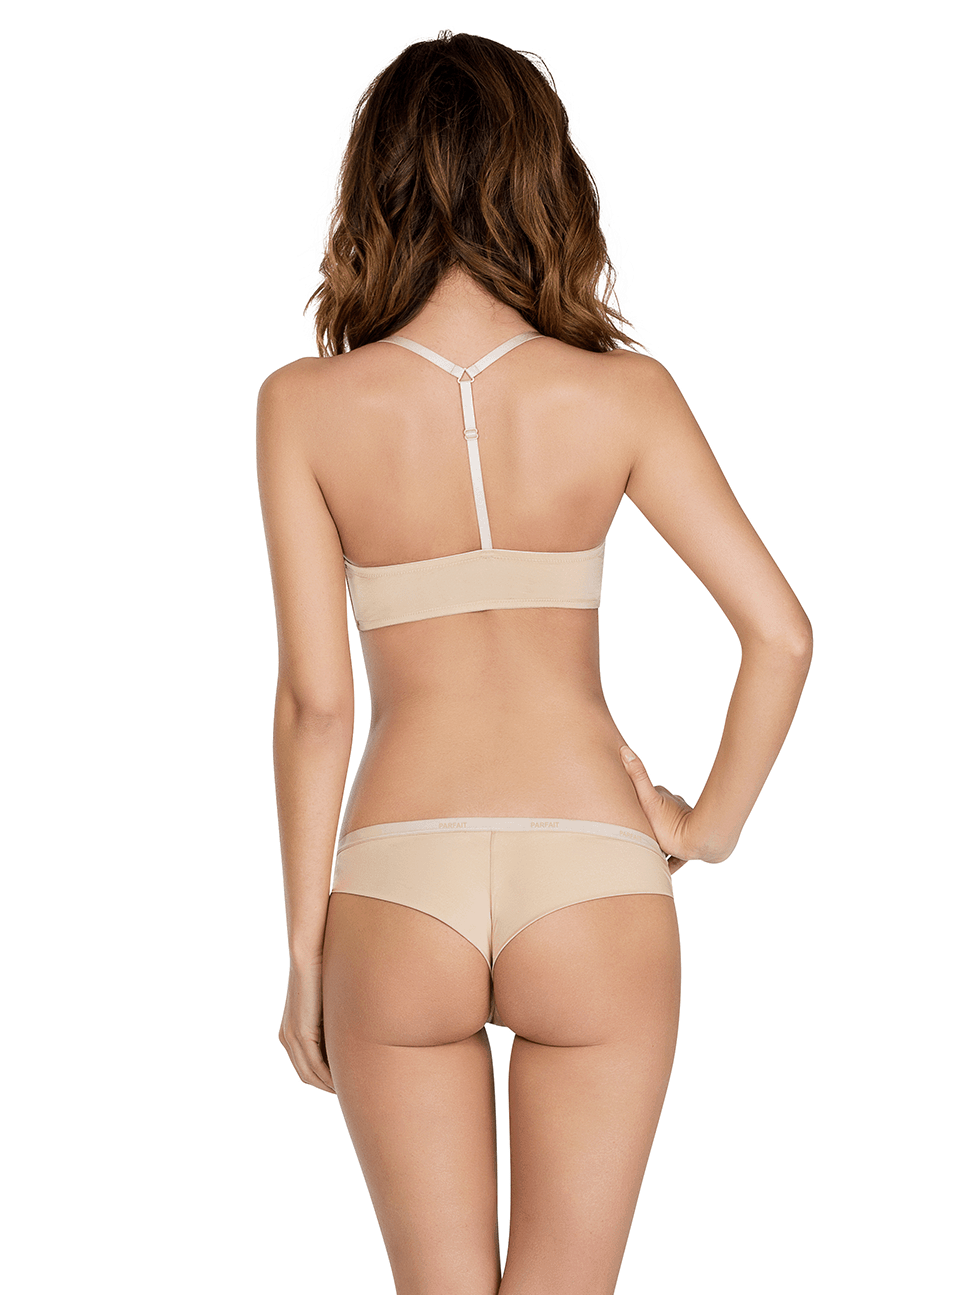 Lynn YBackFrontClosureBraP13122 BrazilianThongP13014 EuropeanNude Back - Lynn Y-back Front Closure Bra - European Nude - P13122